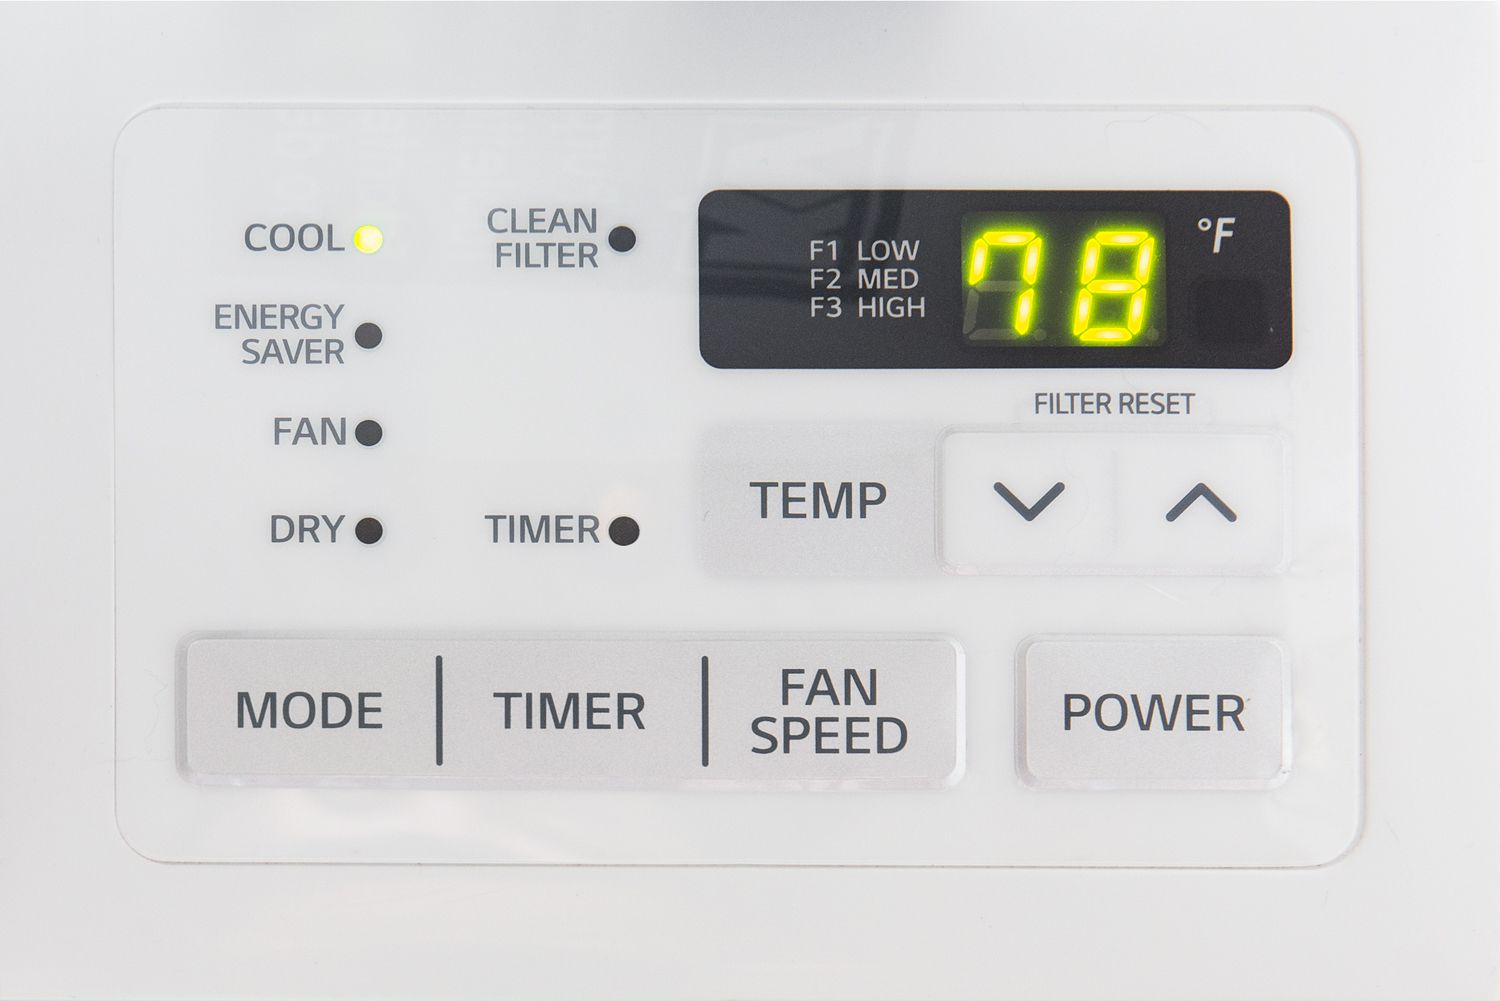 Air conditioner set to 78 degrees